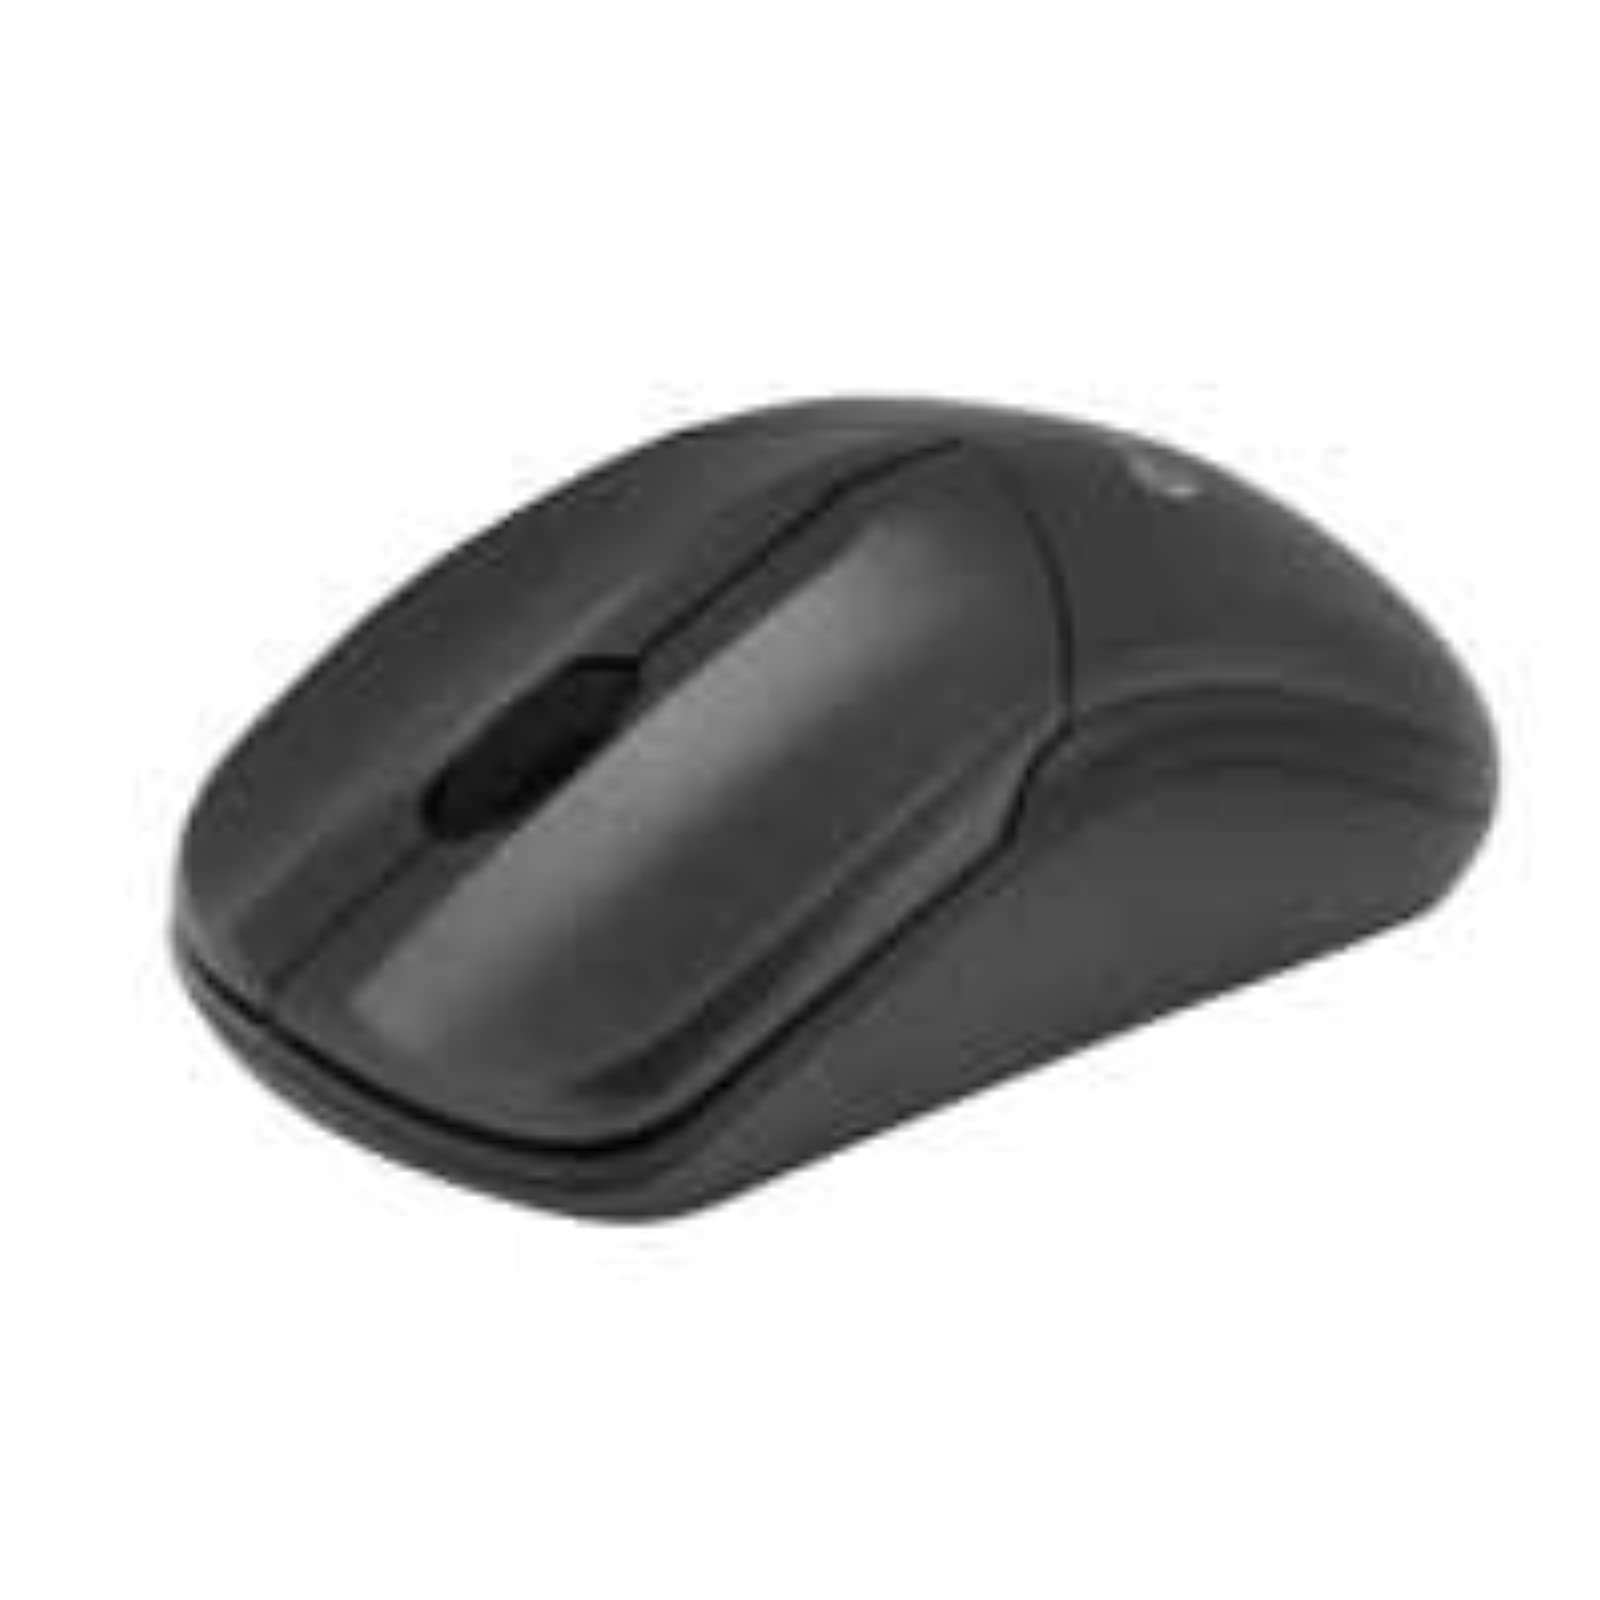 2.4GHZ Wireless 3-BUTTON Optical Mouse Black